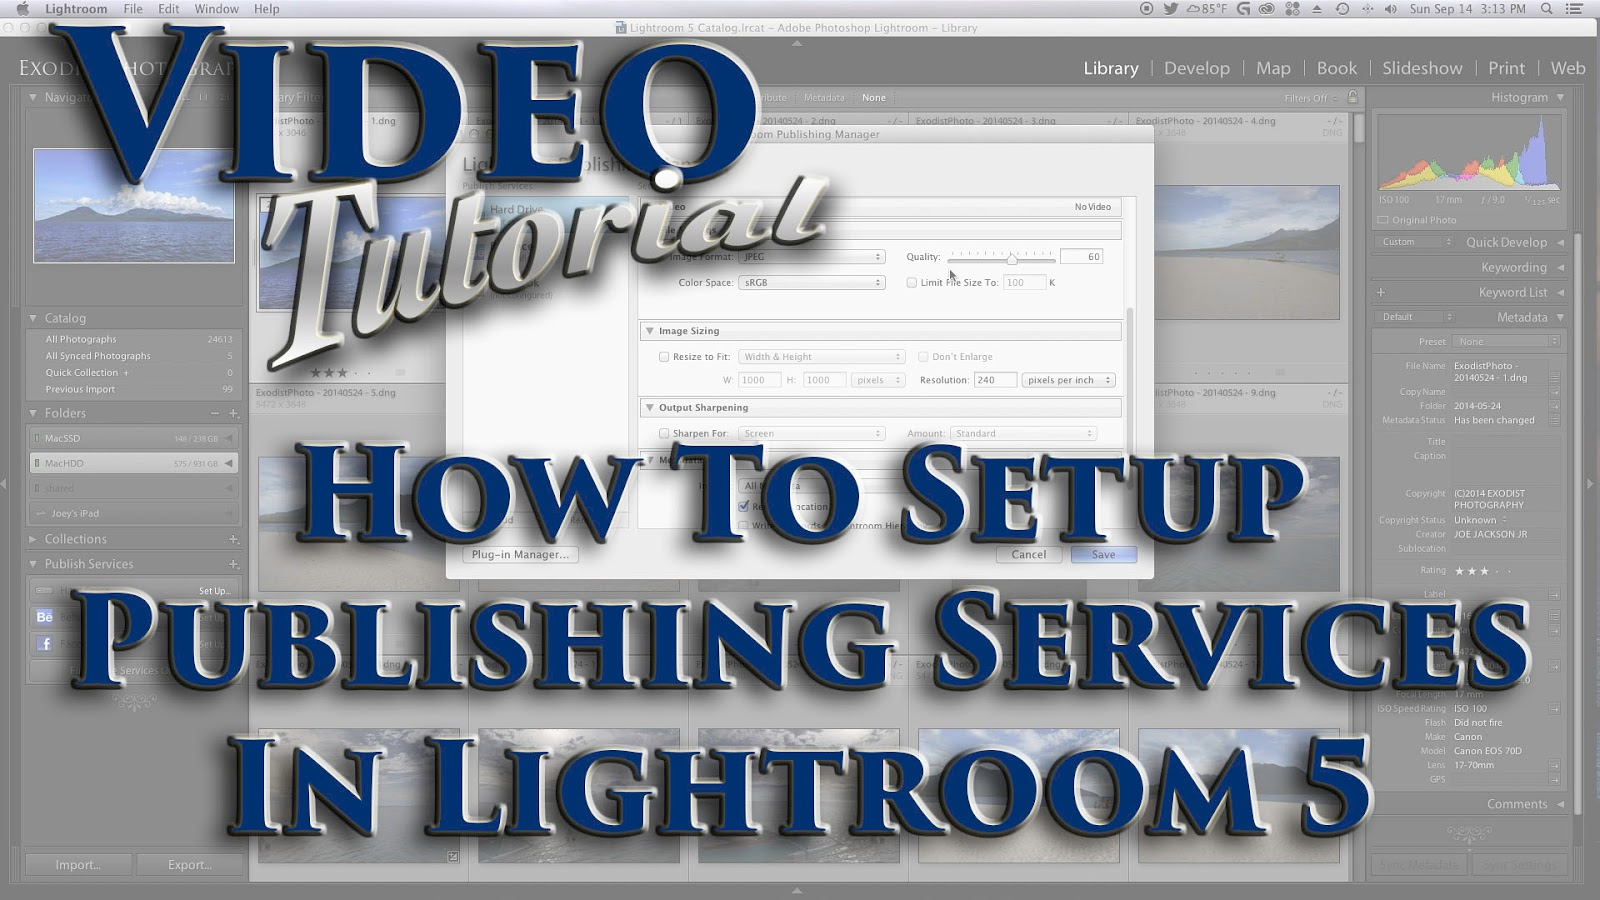 Learn How To Setup Publishing Services In Lightroom 5